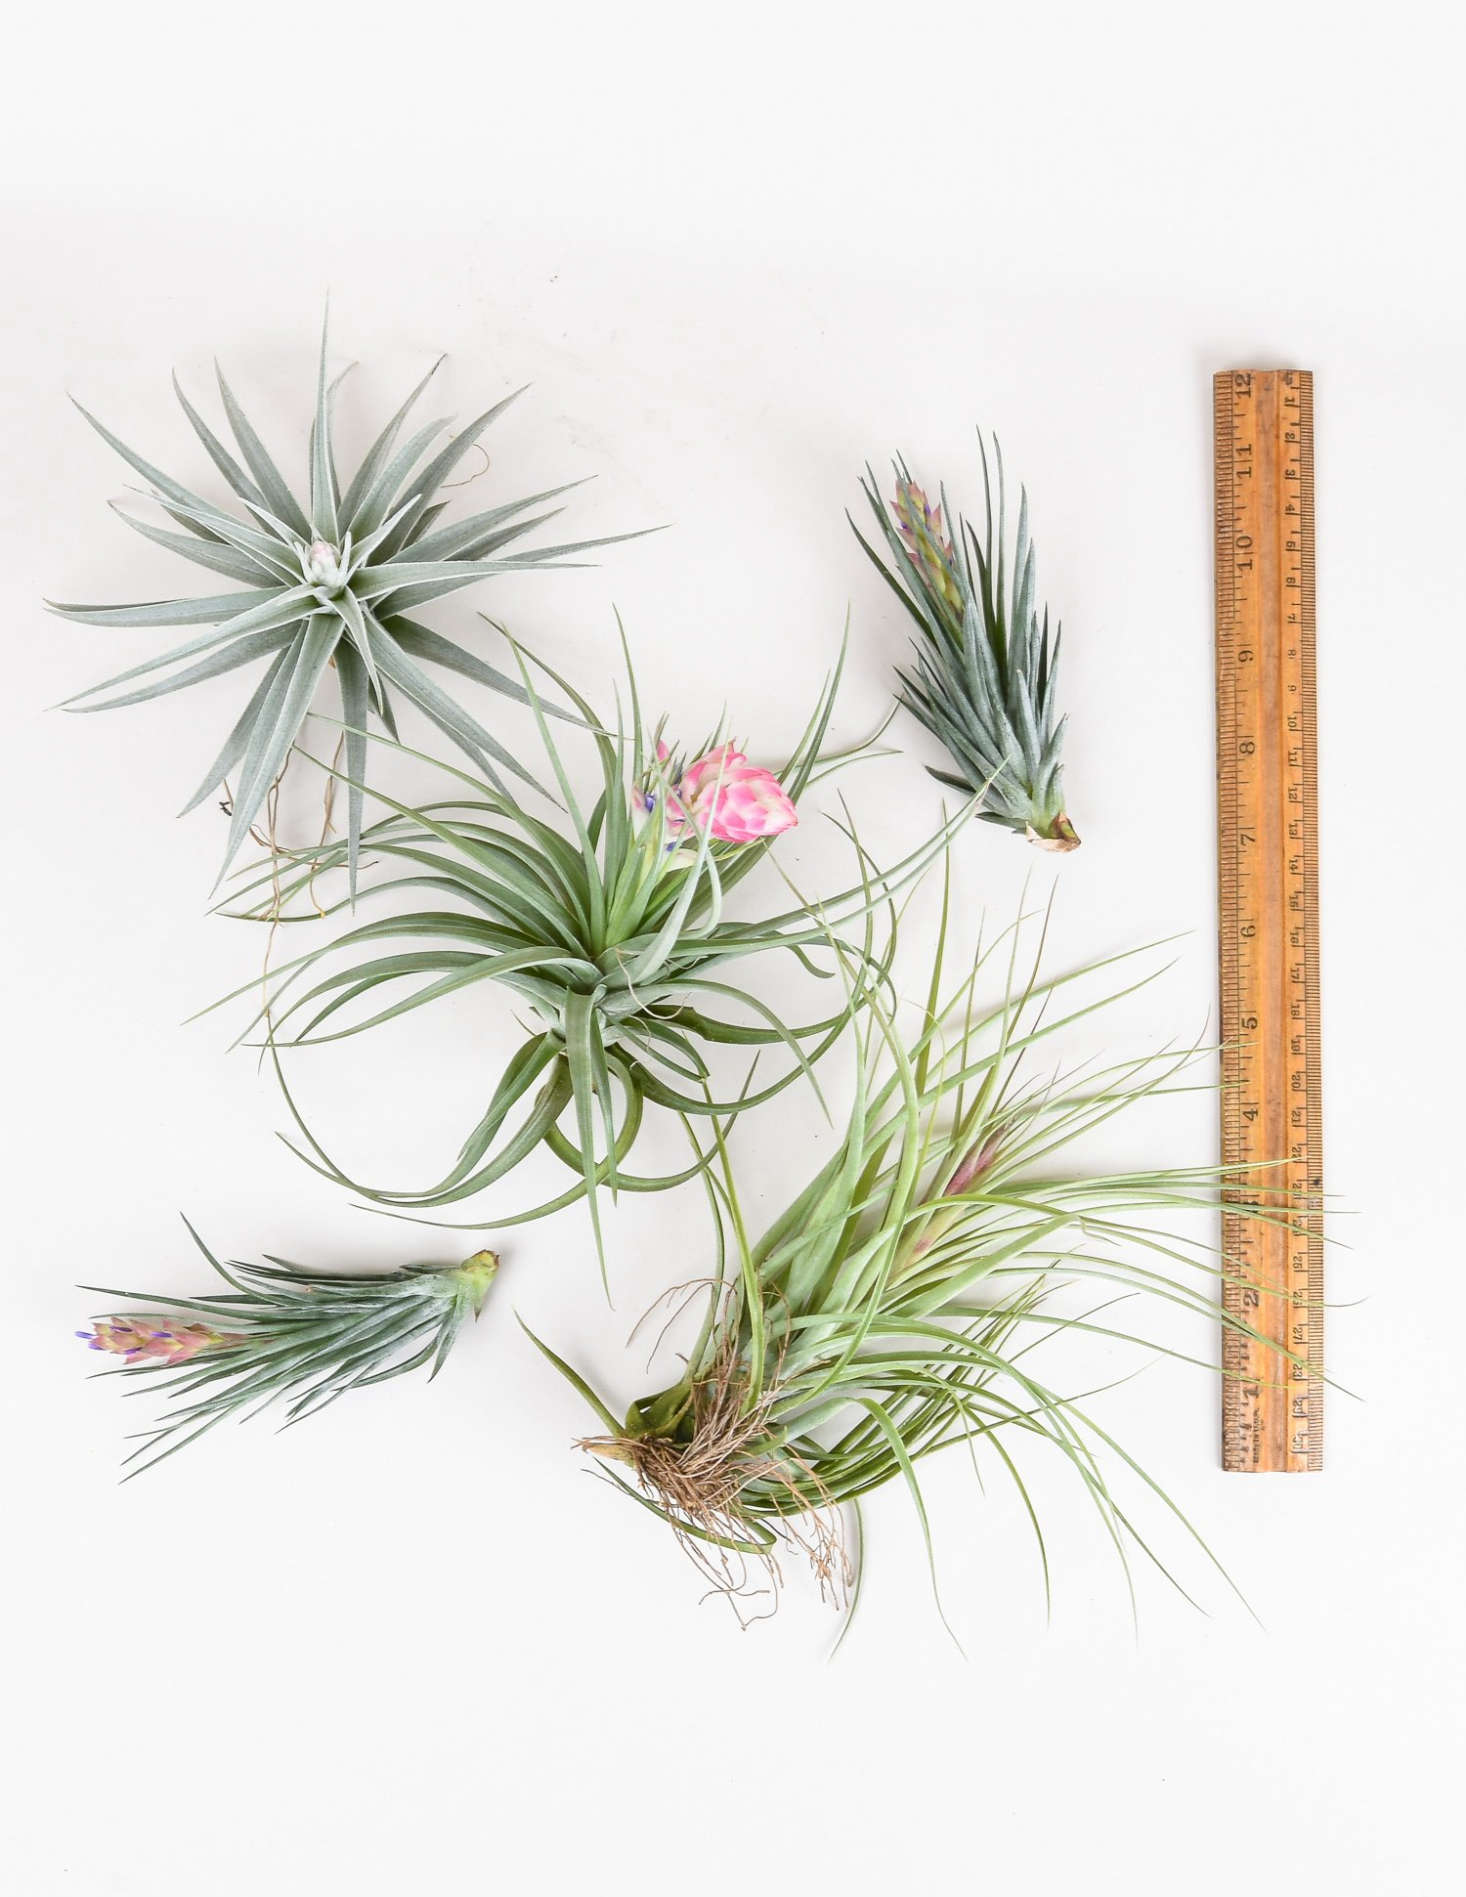 Surprise your loved one with a spiky Tillandsia that blooms; $8 each at Pistils Nursery.